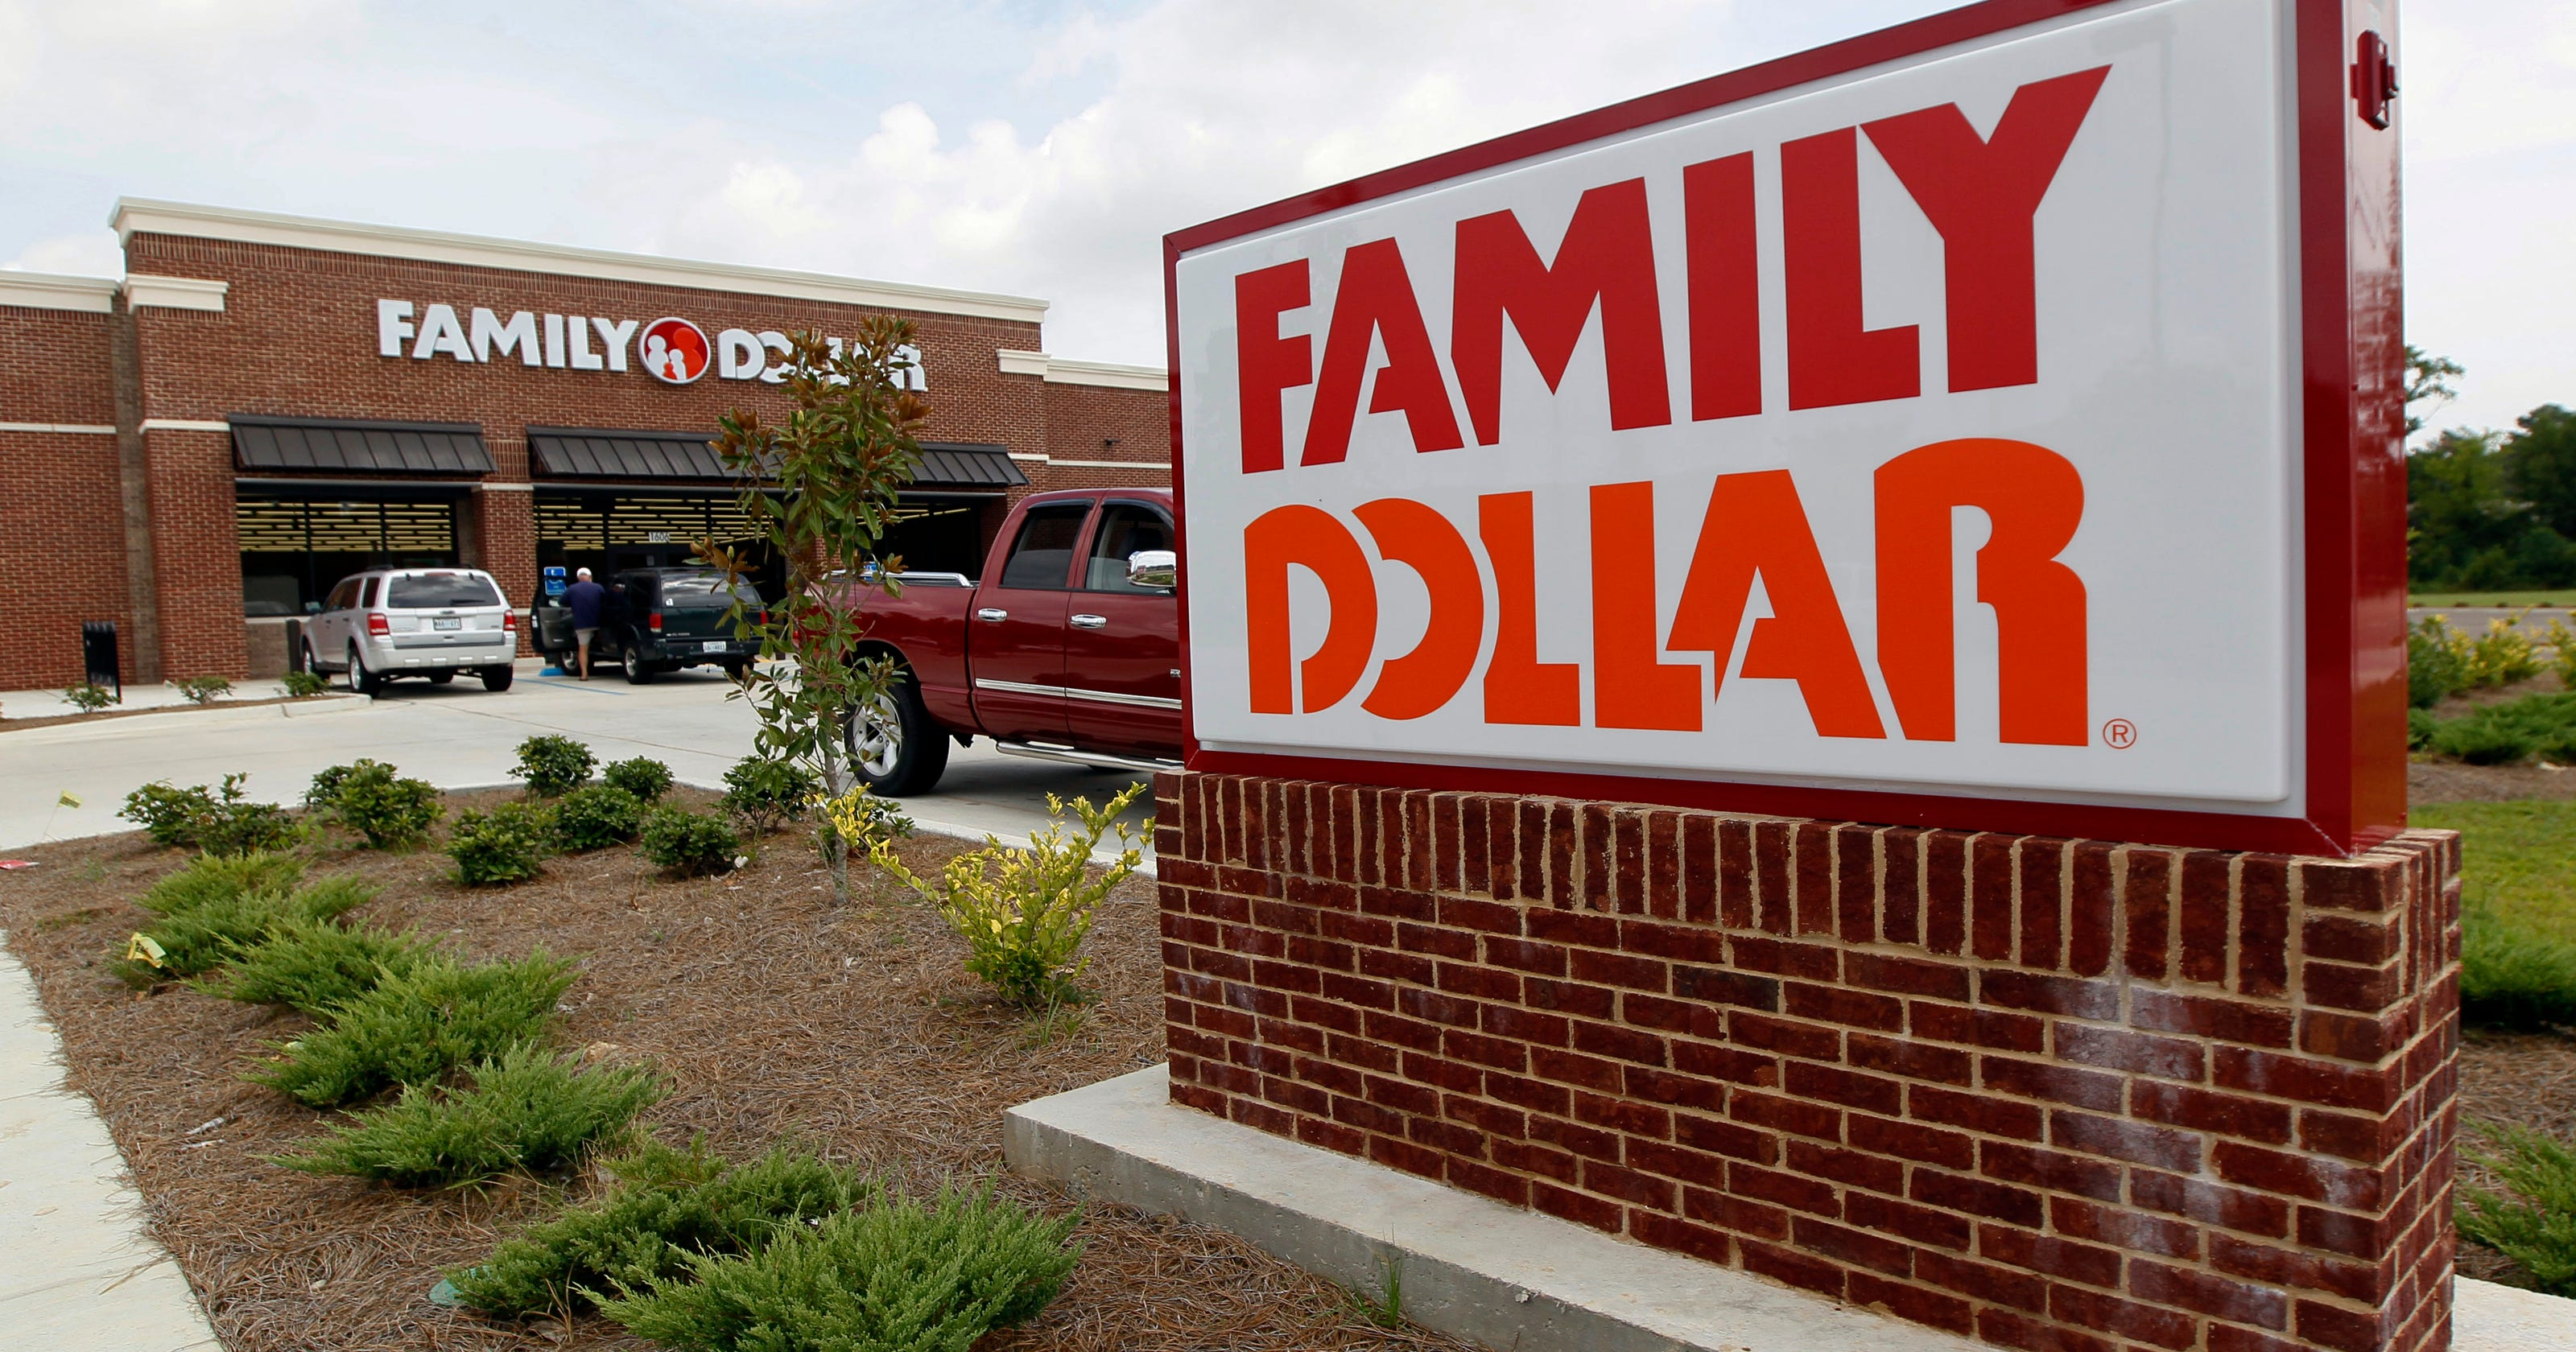 Family Dollar To Pay 45m In Gender Bias Lawsuit Settlement